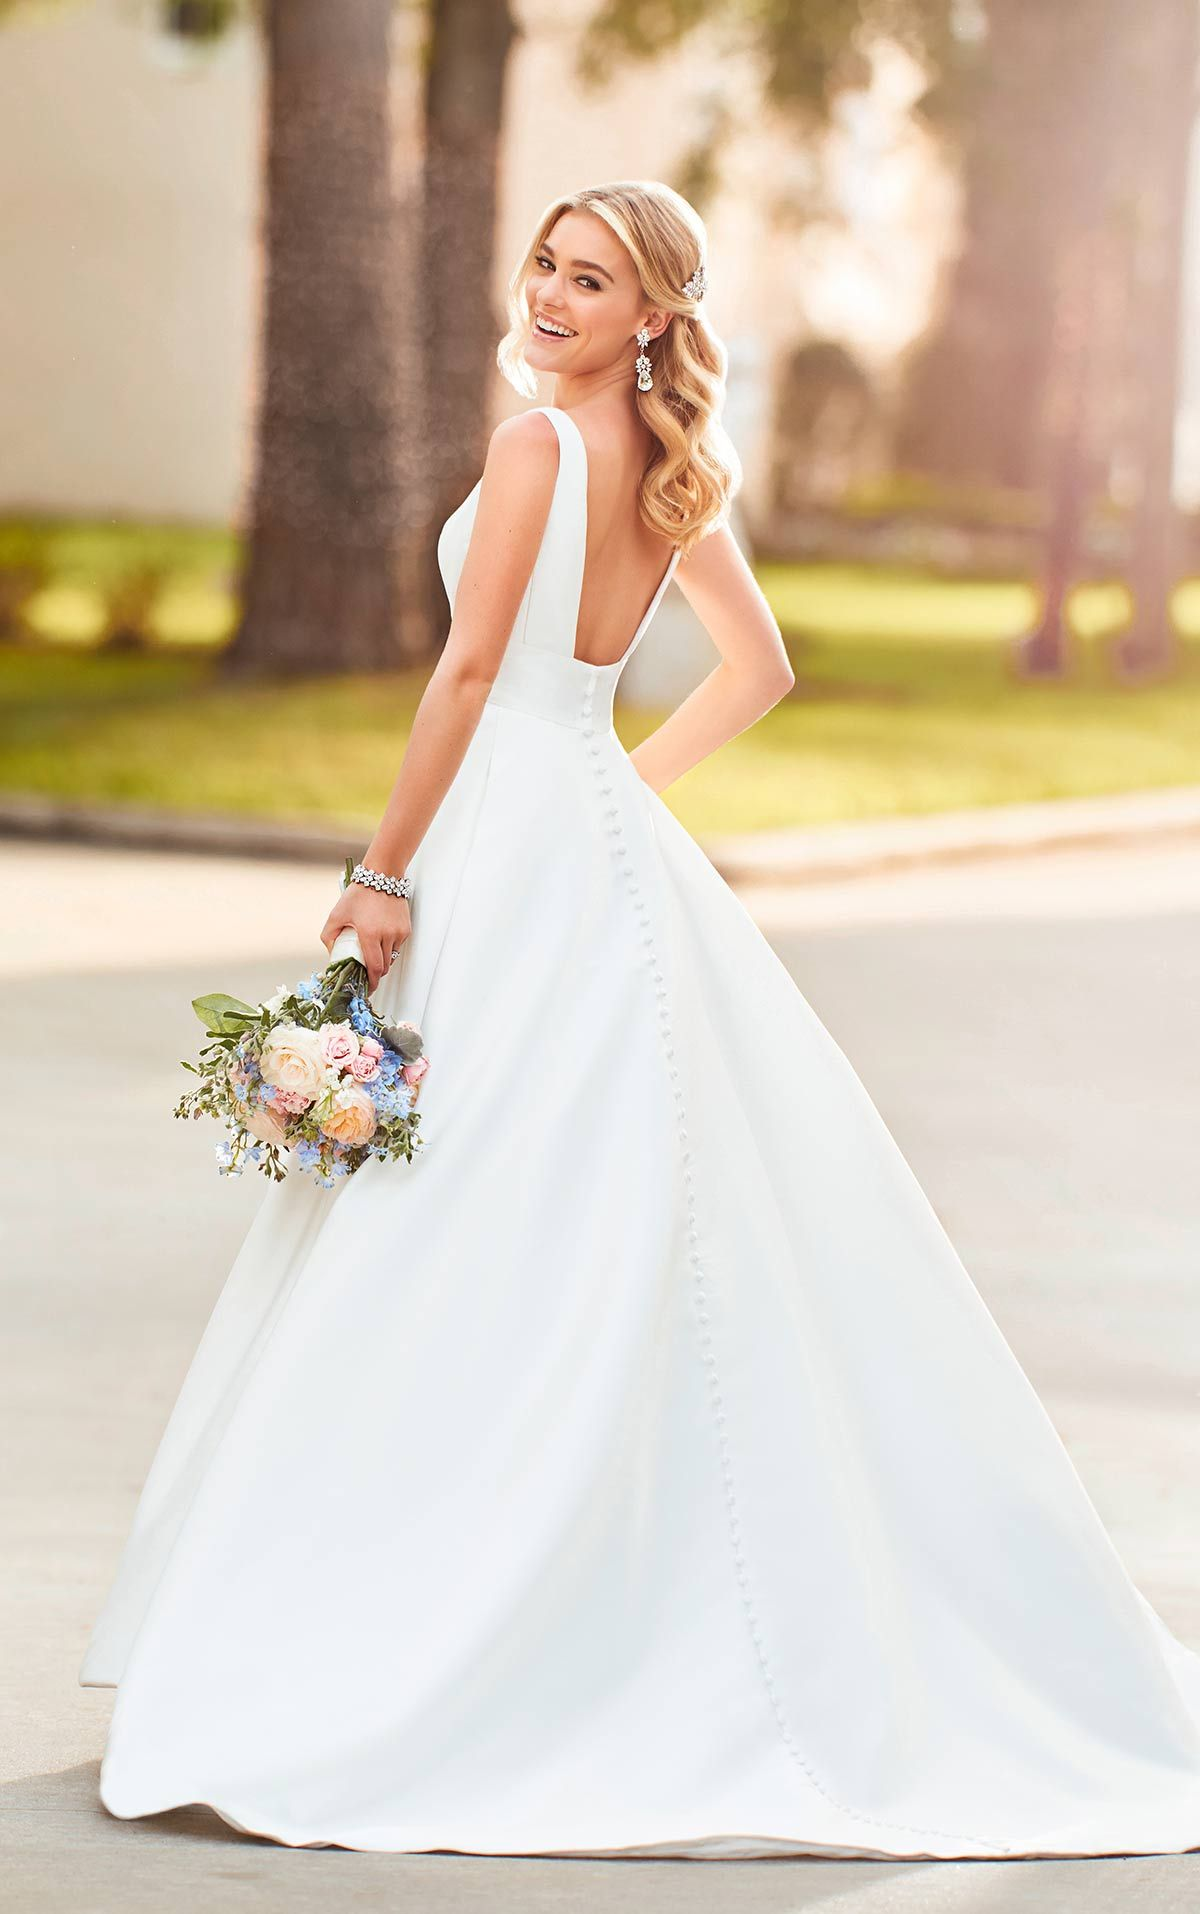 c75cba437608 Plus Size Wedding Dress - Sample Size 20 - Inventory #2580 | Dress  available at Bride To Be Couture | www.bridetobecouture.com |  @bridetobecouture | Simple ...